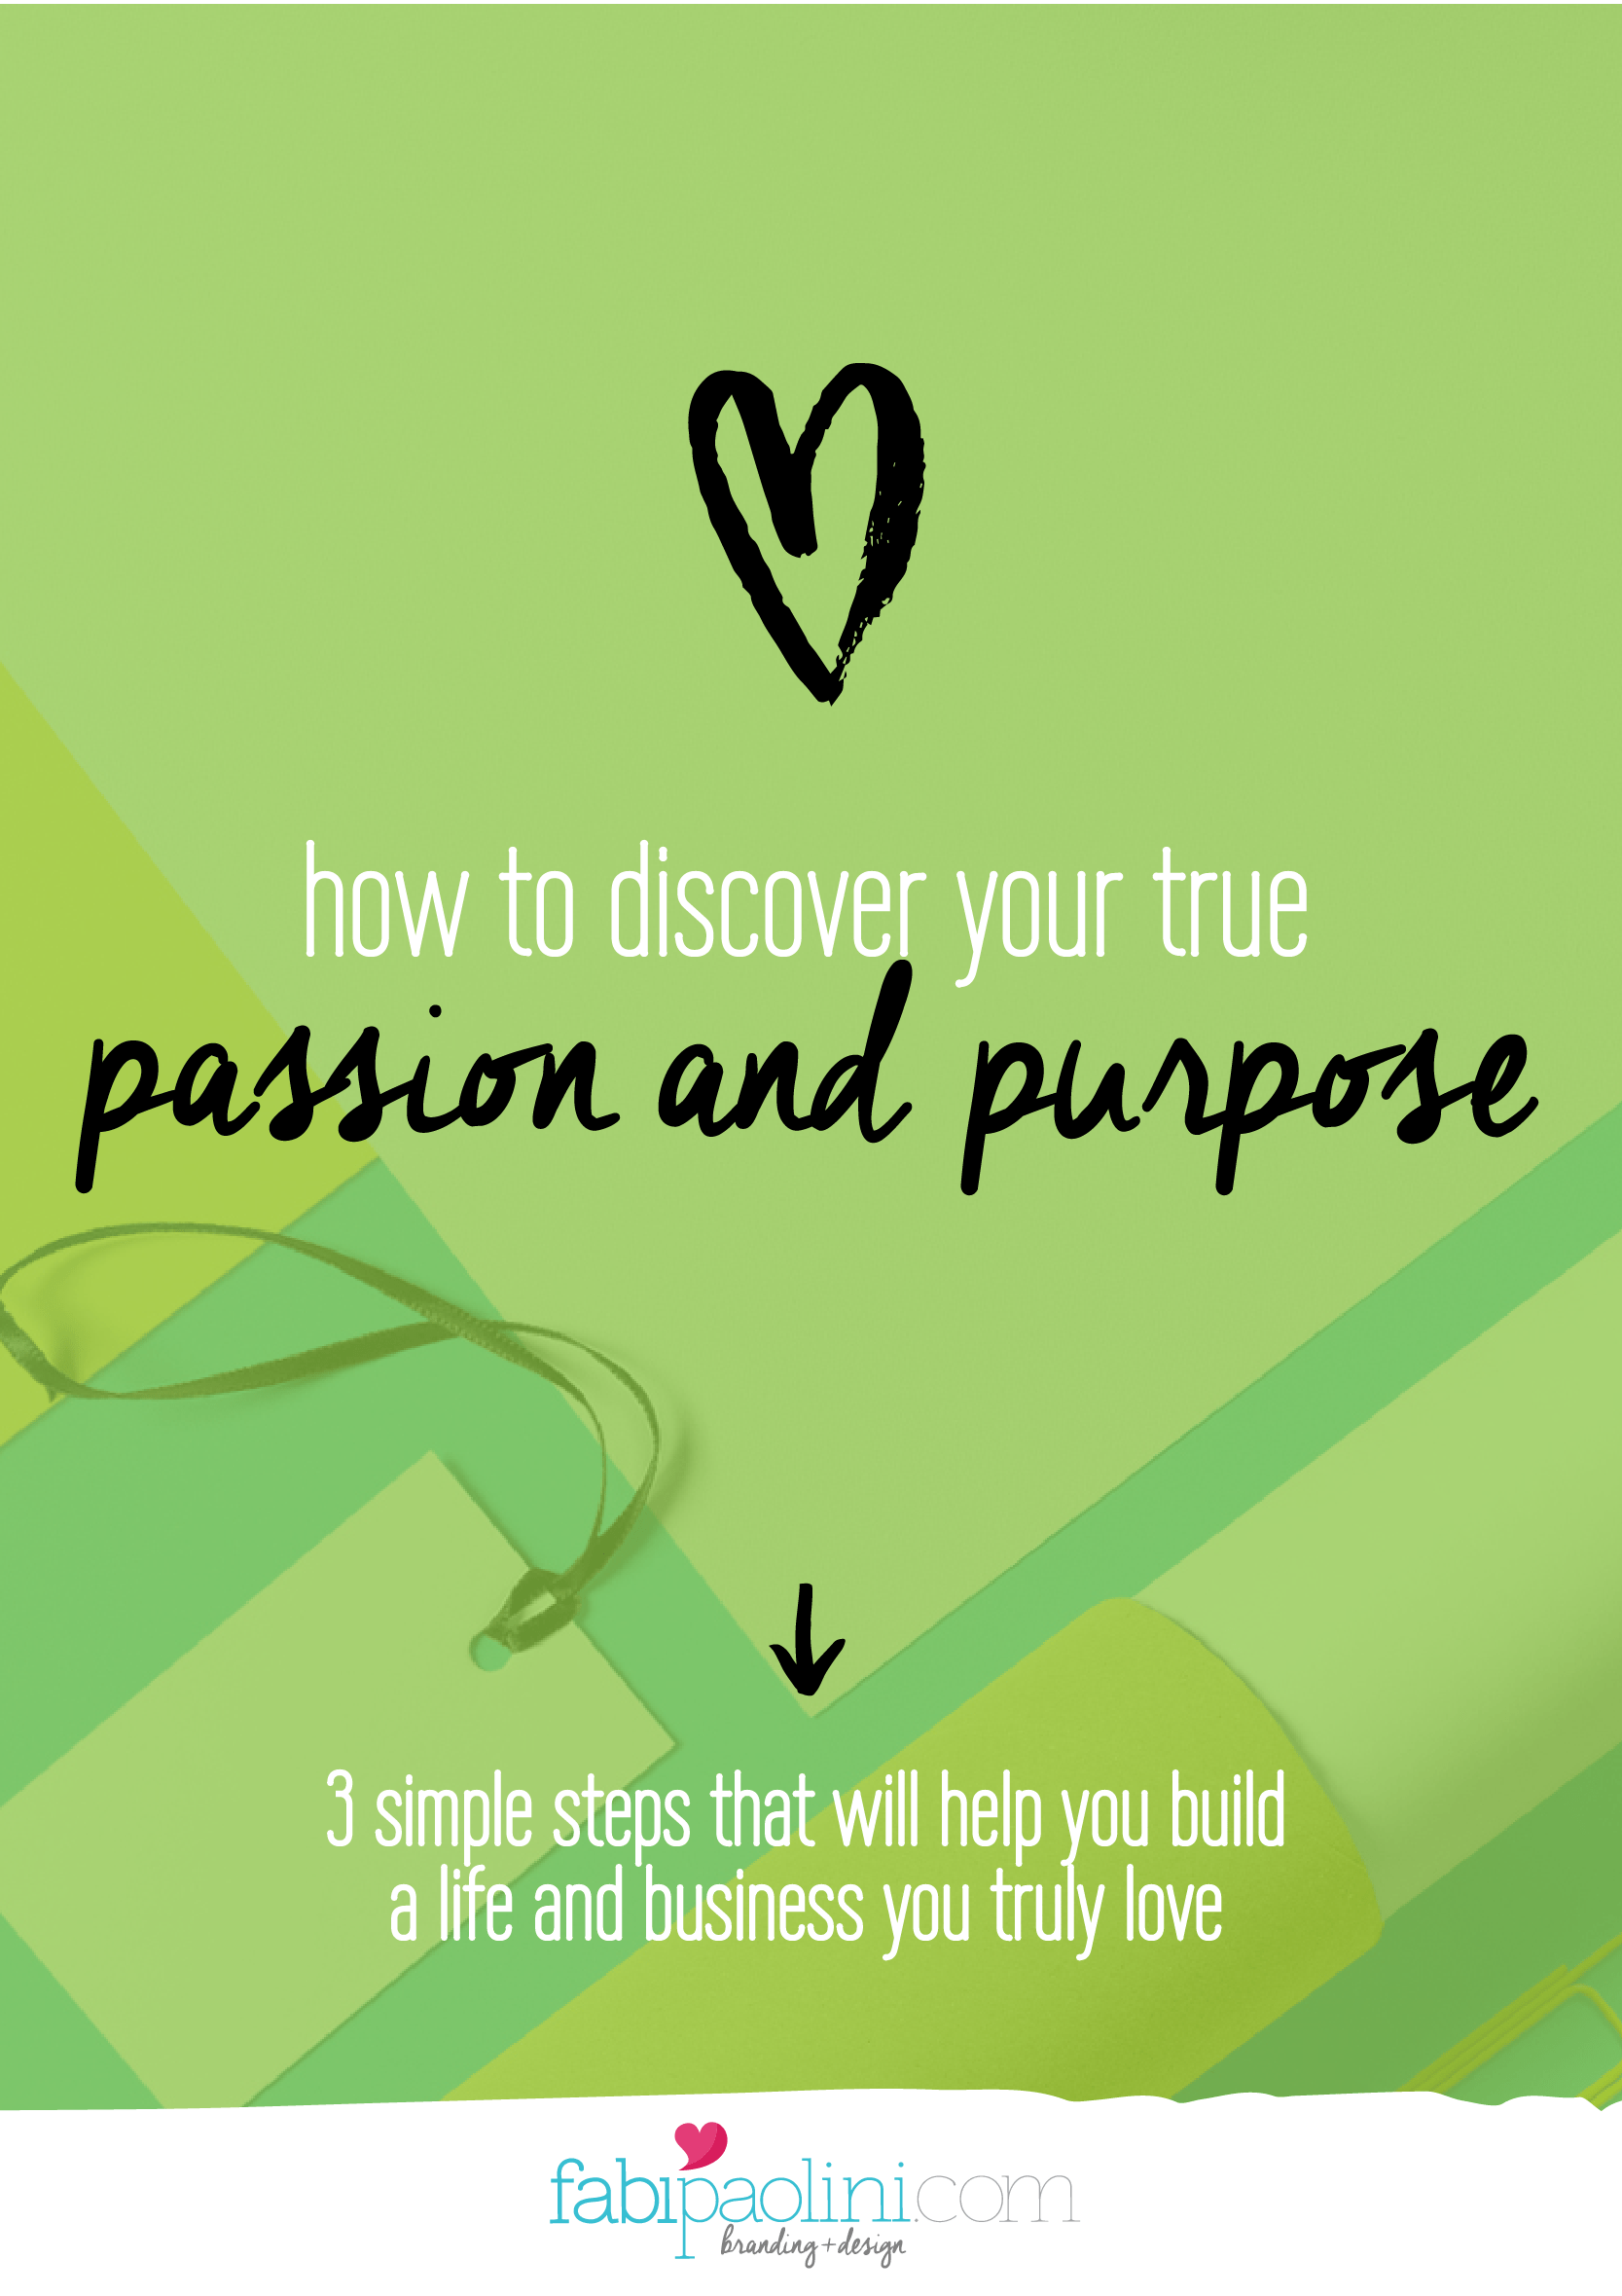 How to discover your true passion and purpose for your business and life. Branding and small business advice. Check it out